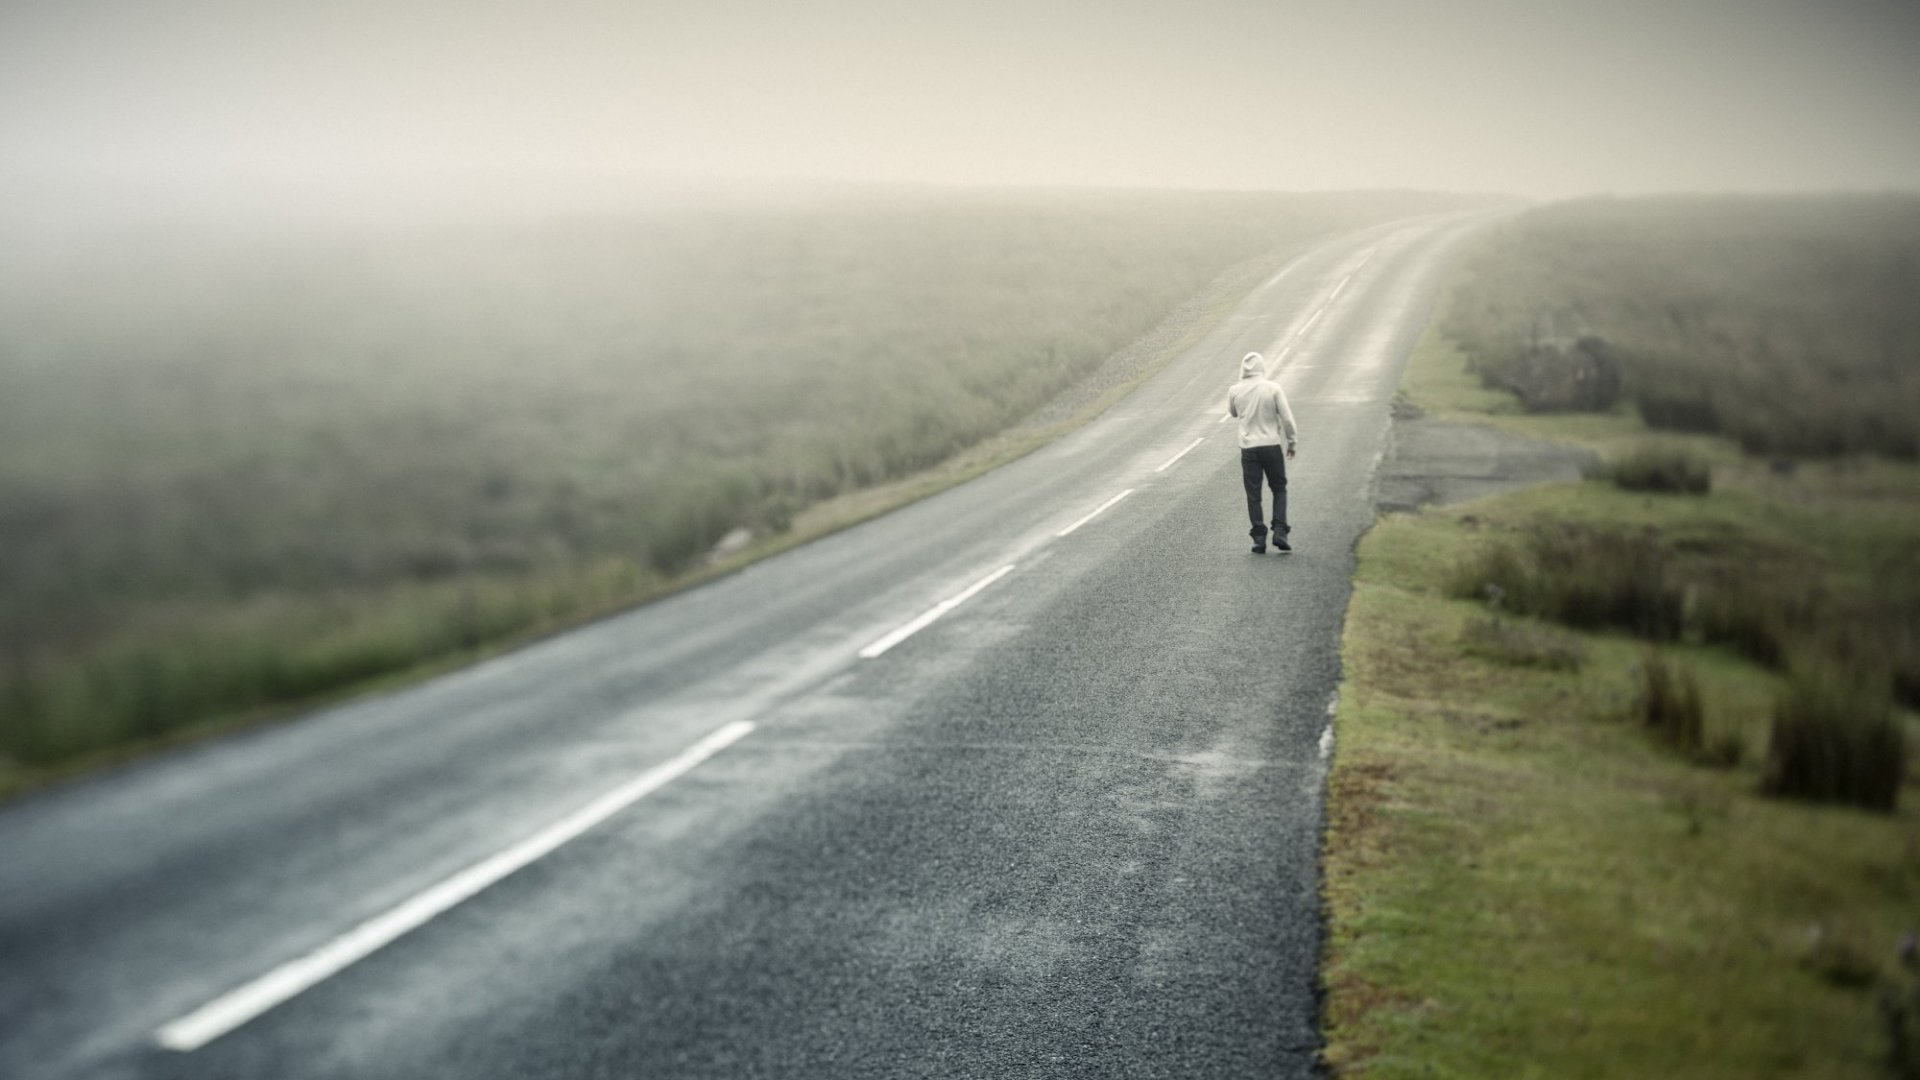 What the Road From Failure to Success Looks Like